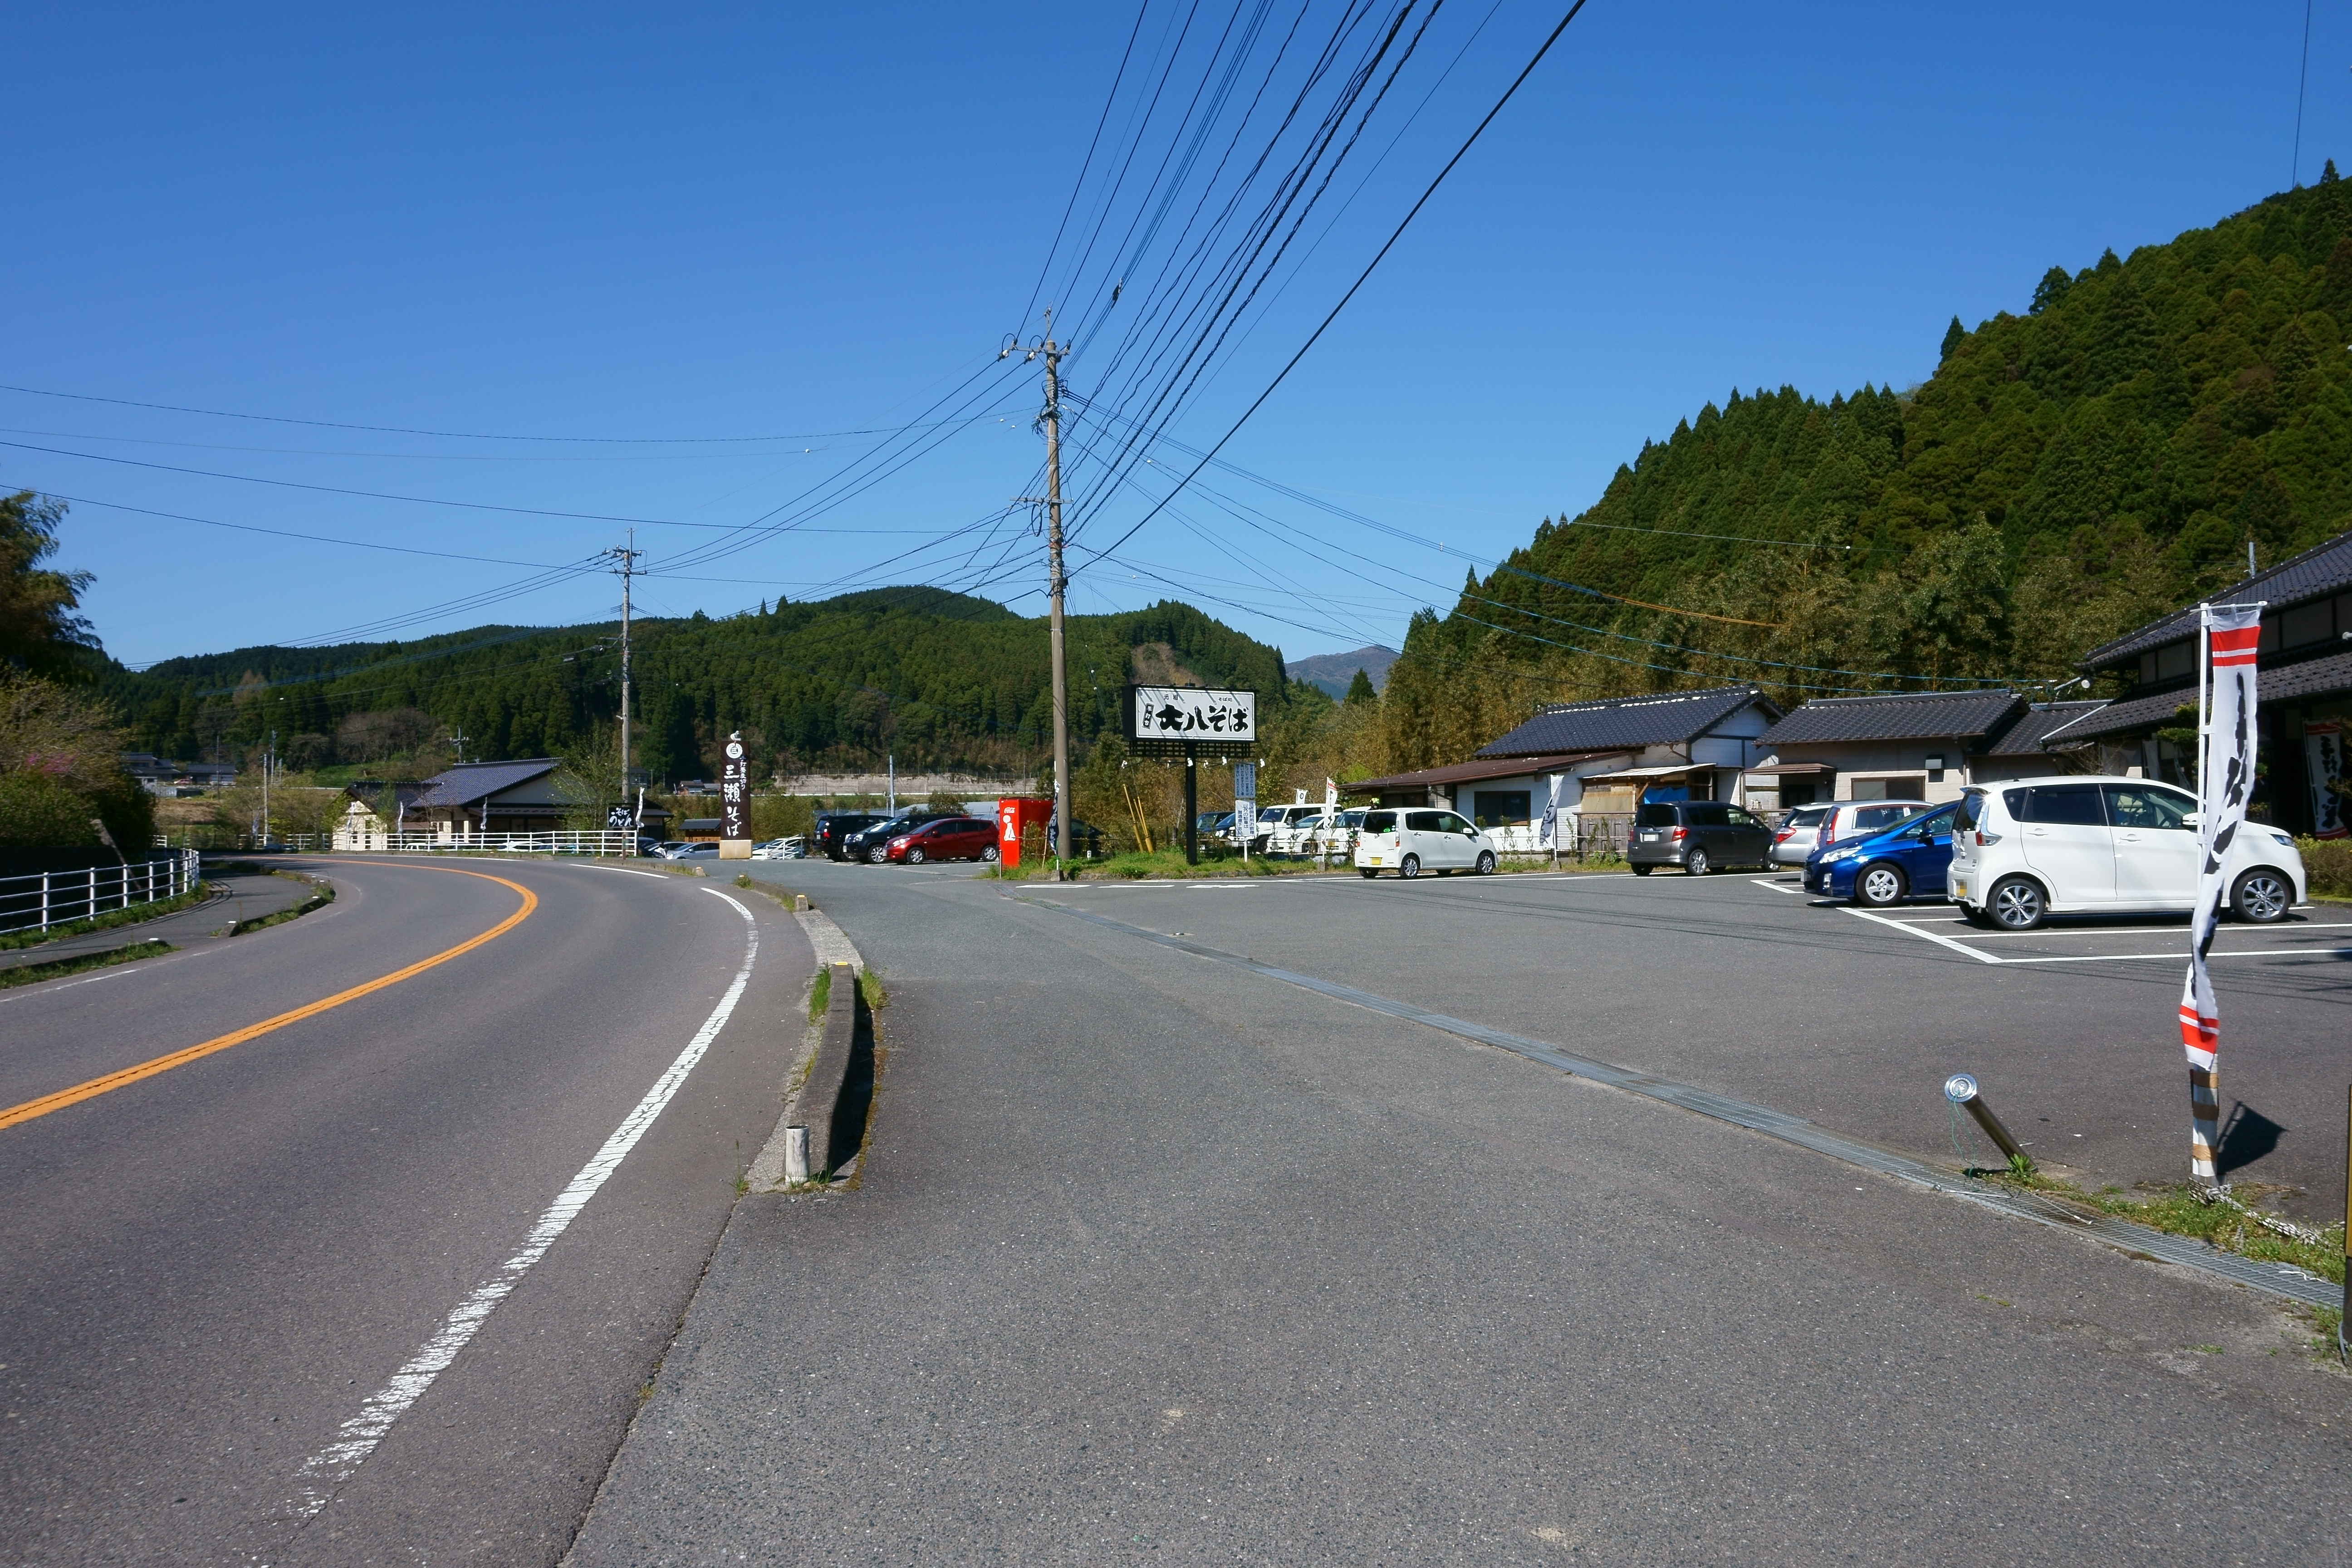 File Soba Restaurants On Side Of Route 263 In Mitsuse Jpg